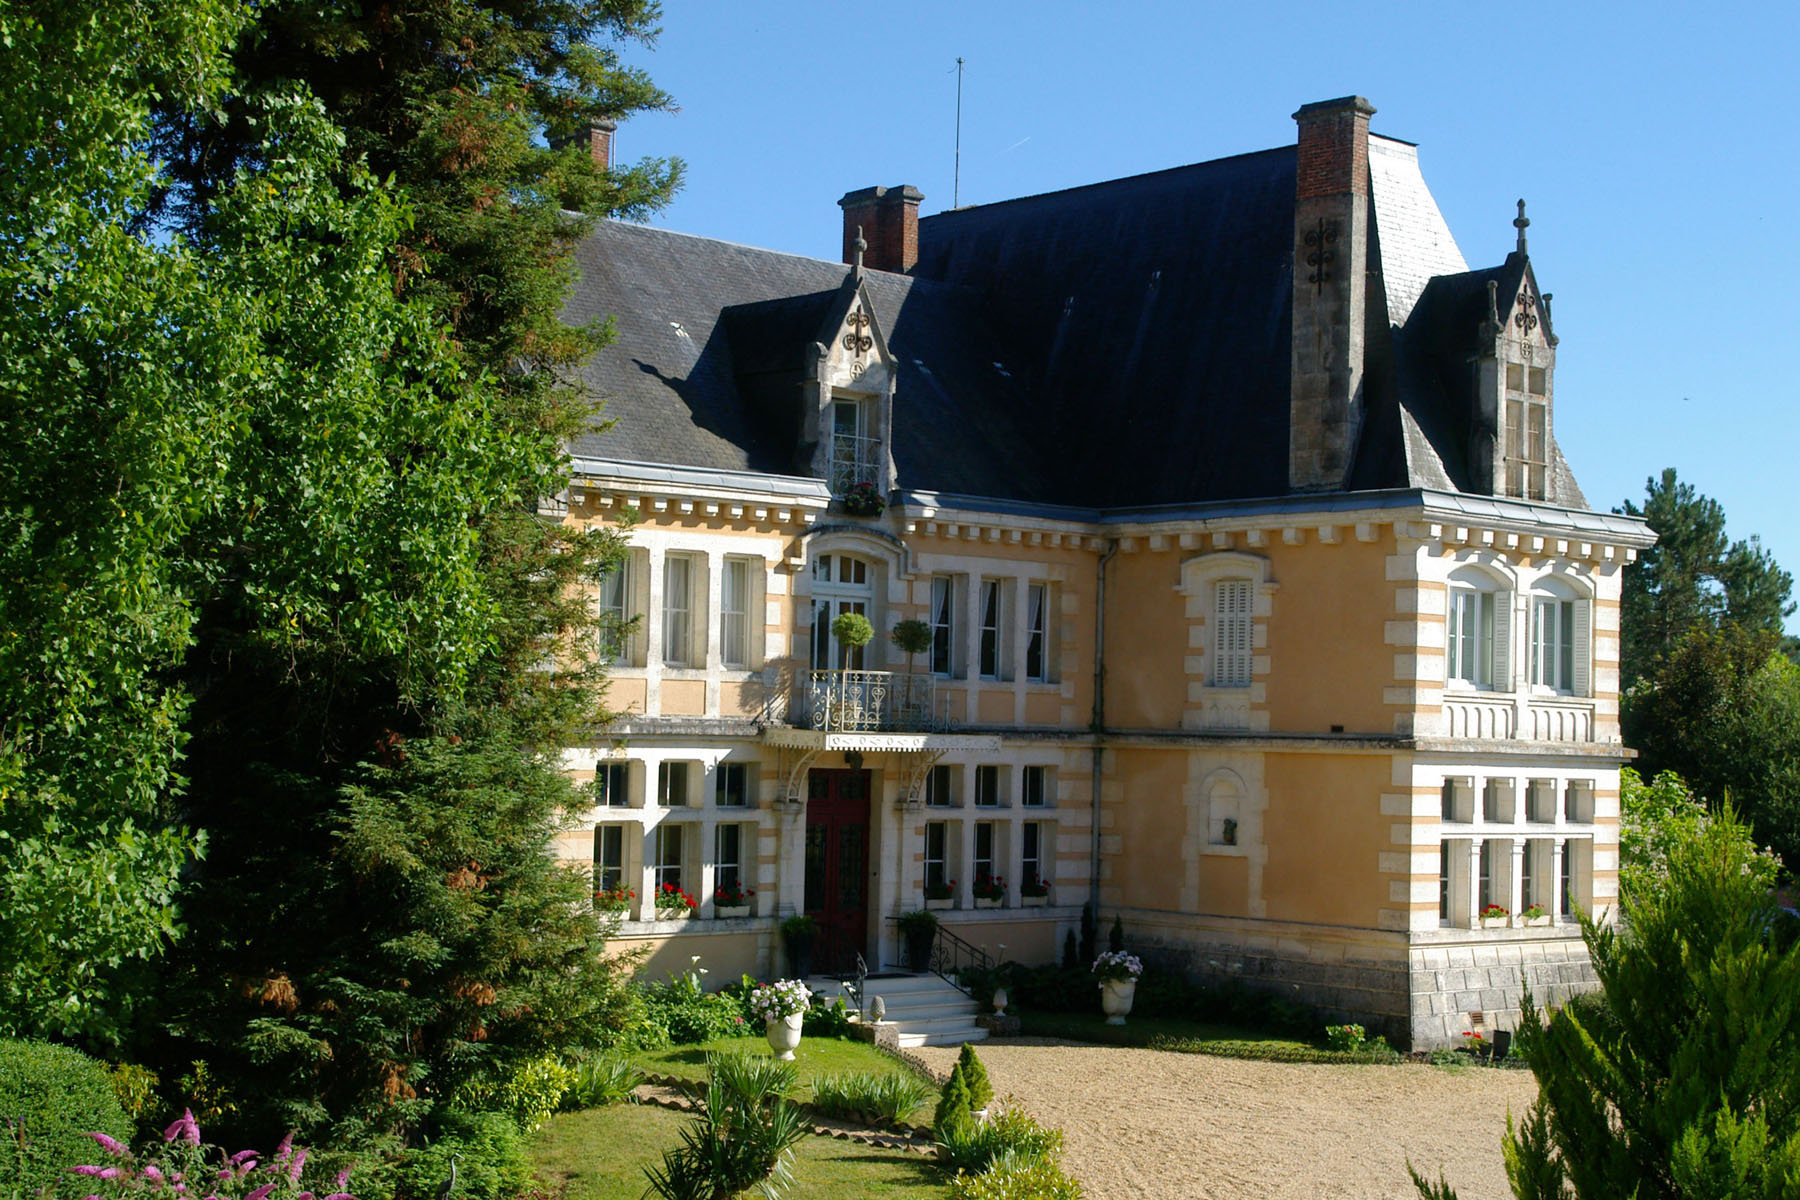 From your adventure in Portugal to the French countryside - Click here for more information about a vacation in France